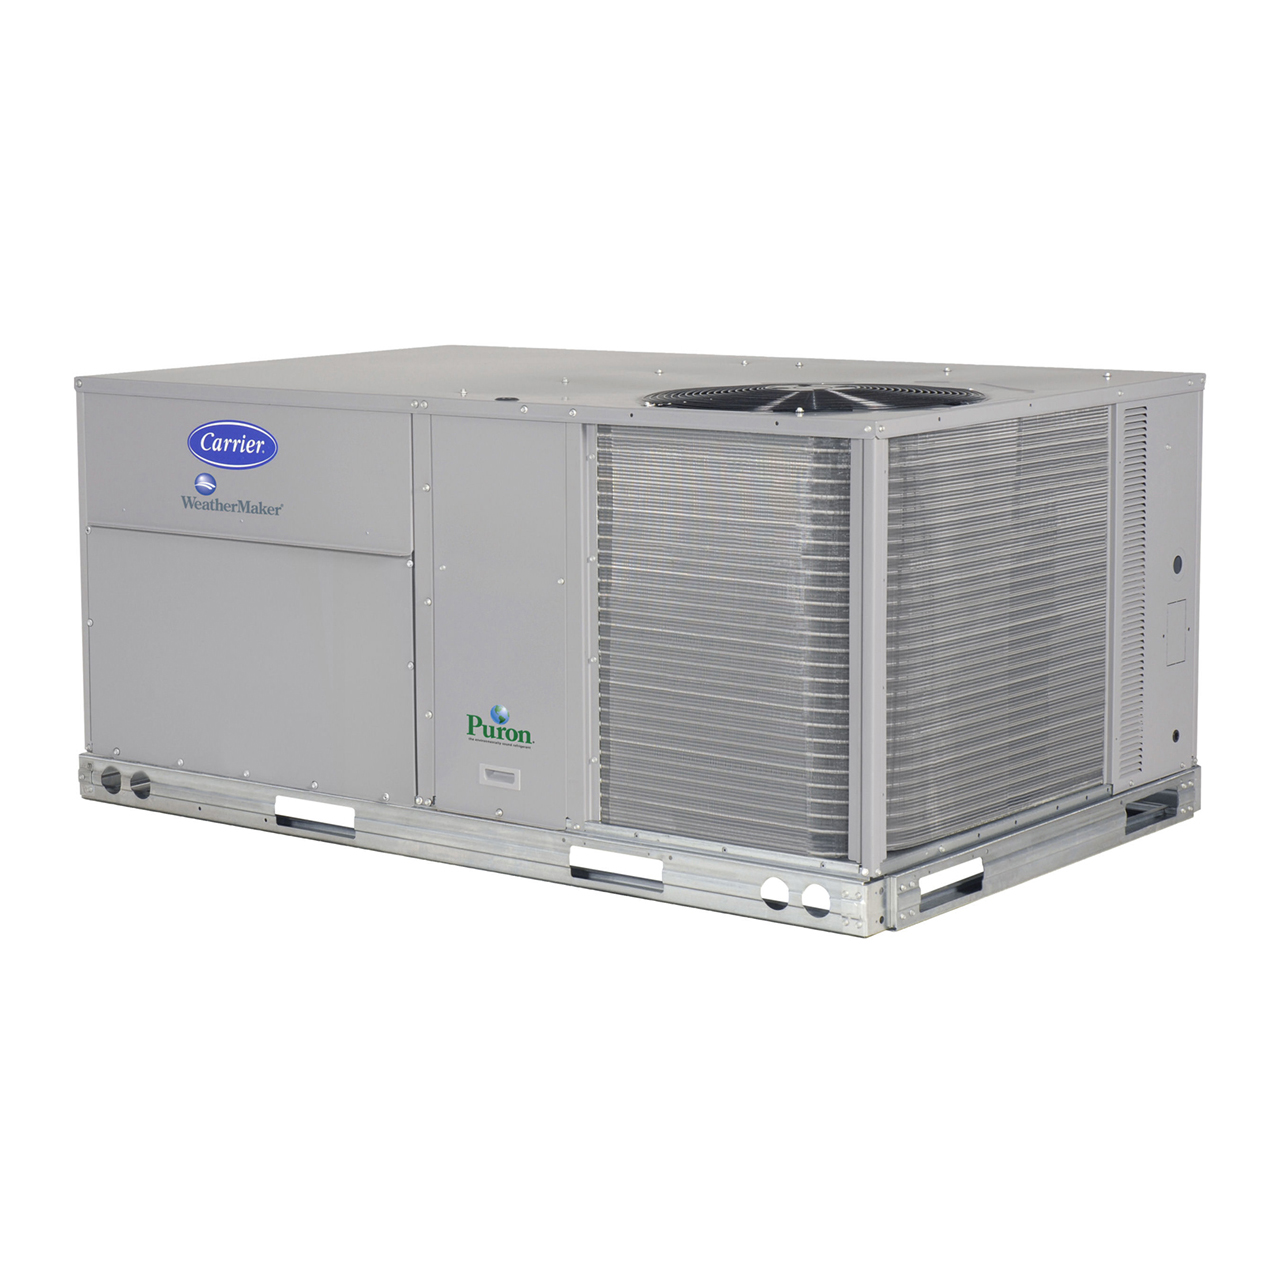 """WeatherMaker® 50KCQ rooftop units were designed to be easy to install, maintain, and operate, with customer-requested features including a gage port, centralized control center, plug-and-play accessory board, """"no-strip screw"""" collars, and handled access panels."""